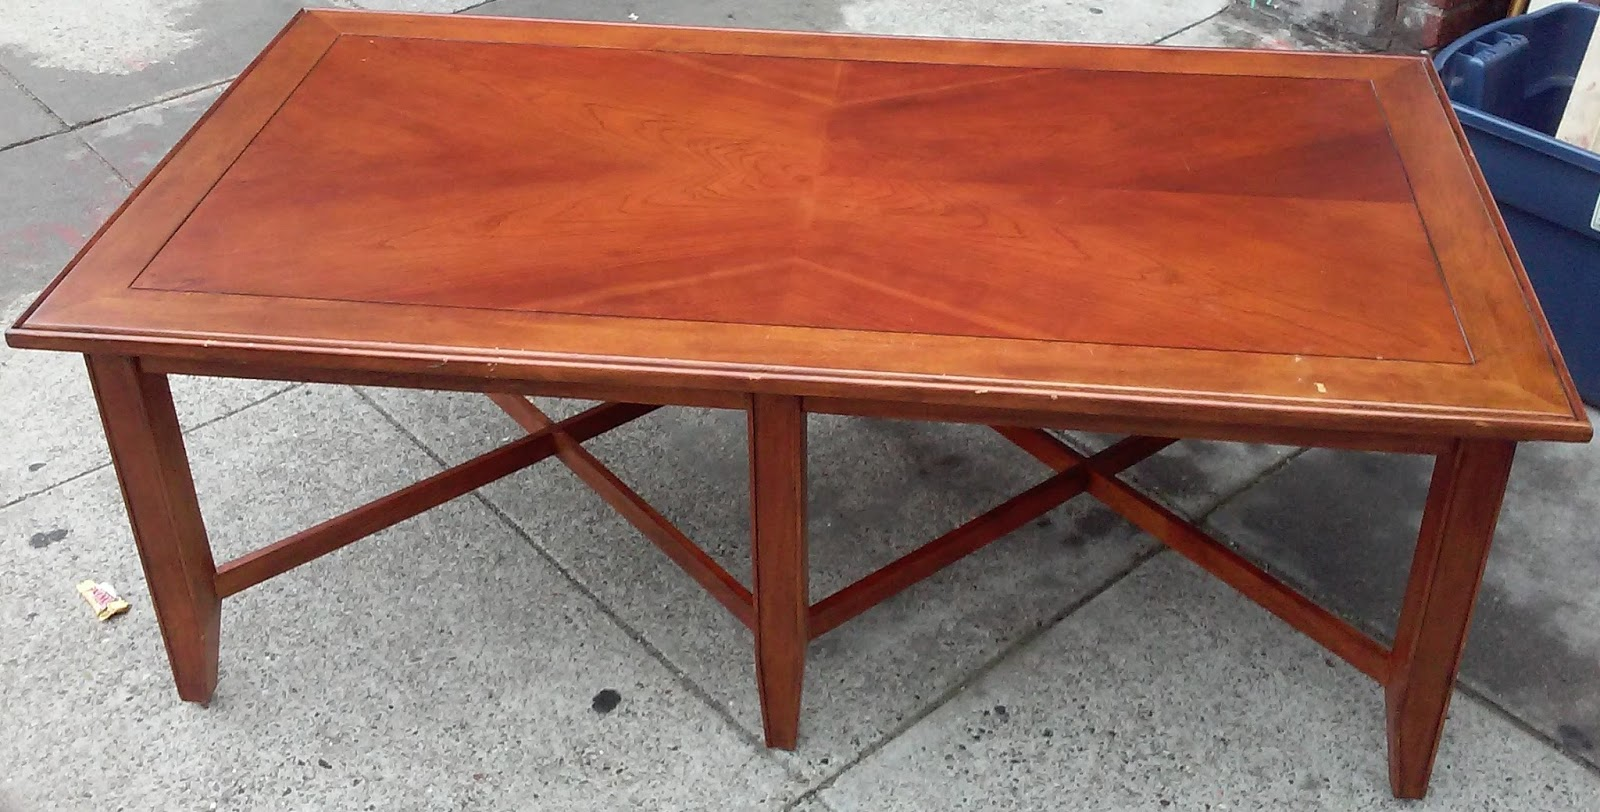 Uhuru Furniture Collectibles Sold Reduced Stanley 4 39 Cherry Finish Coffee Table 40